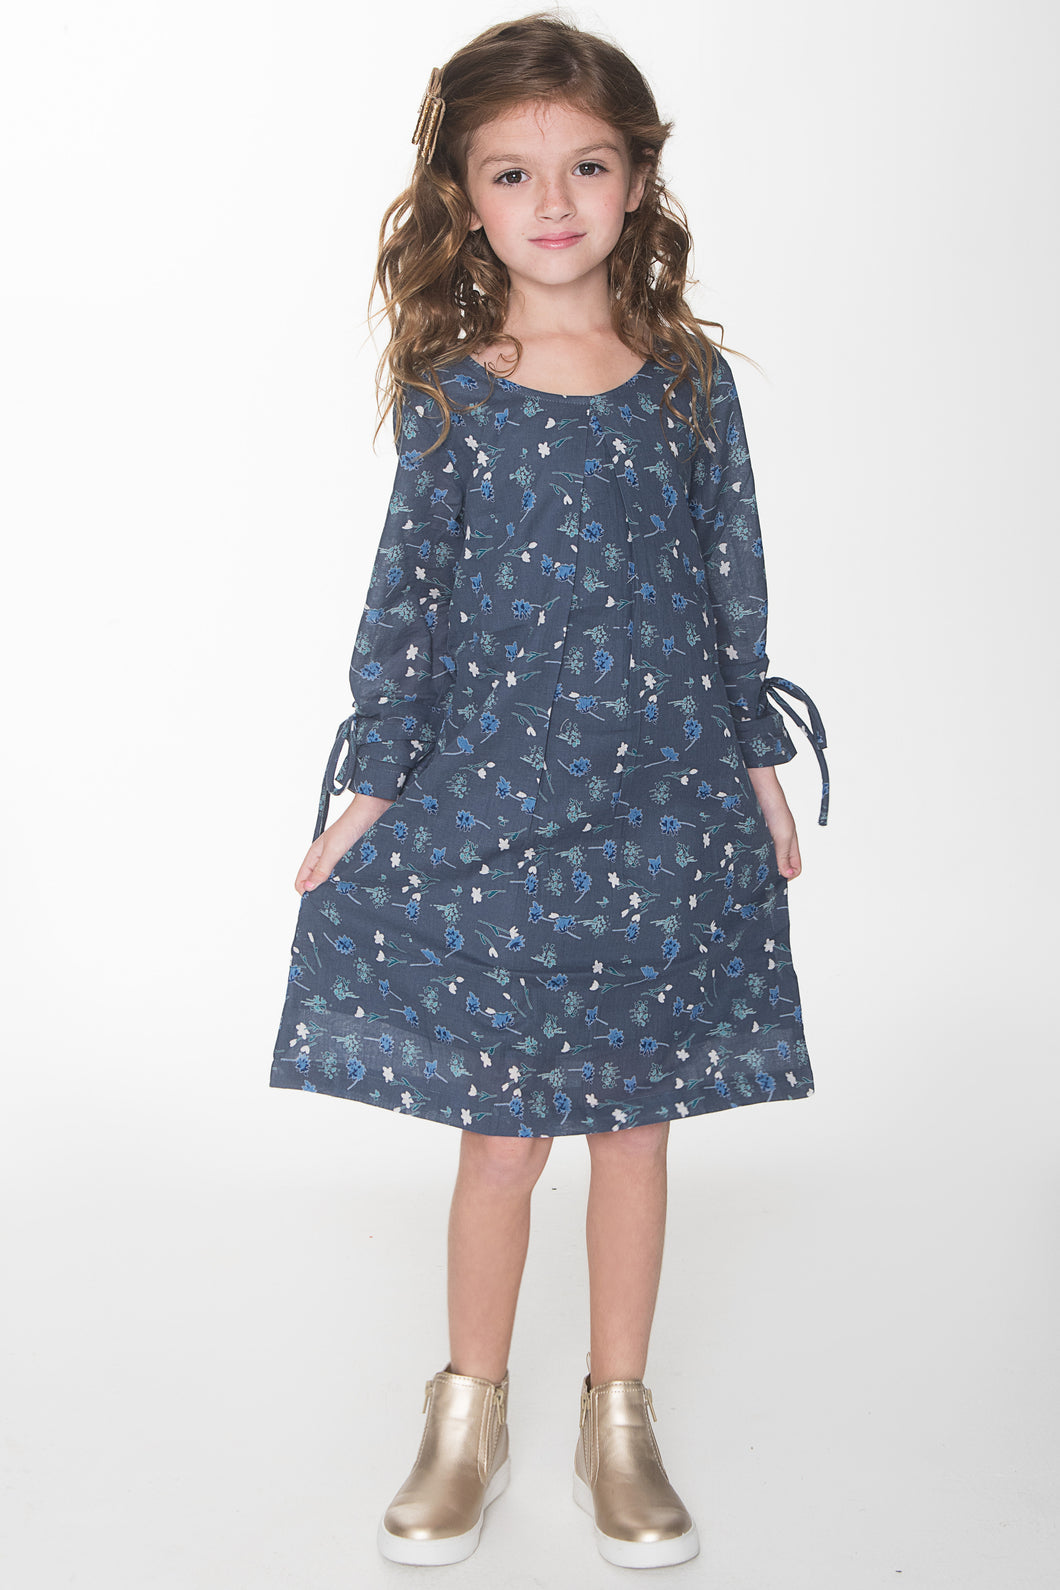 Blue Floral Shift Dress - Kids Wholesale Boutique Clothing, Dress - Girls Dresses, Yo Baby Wholesale - Yo Baby